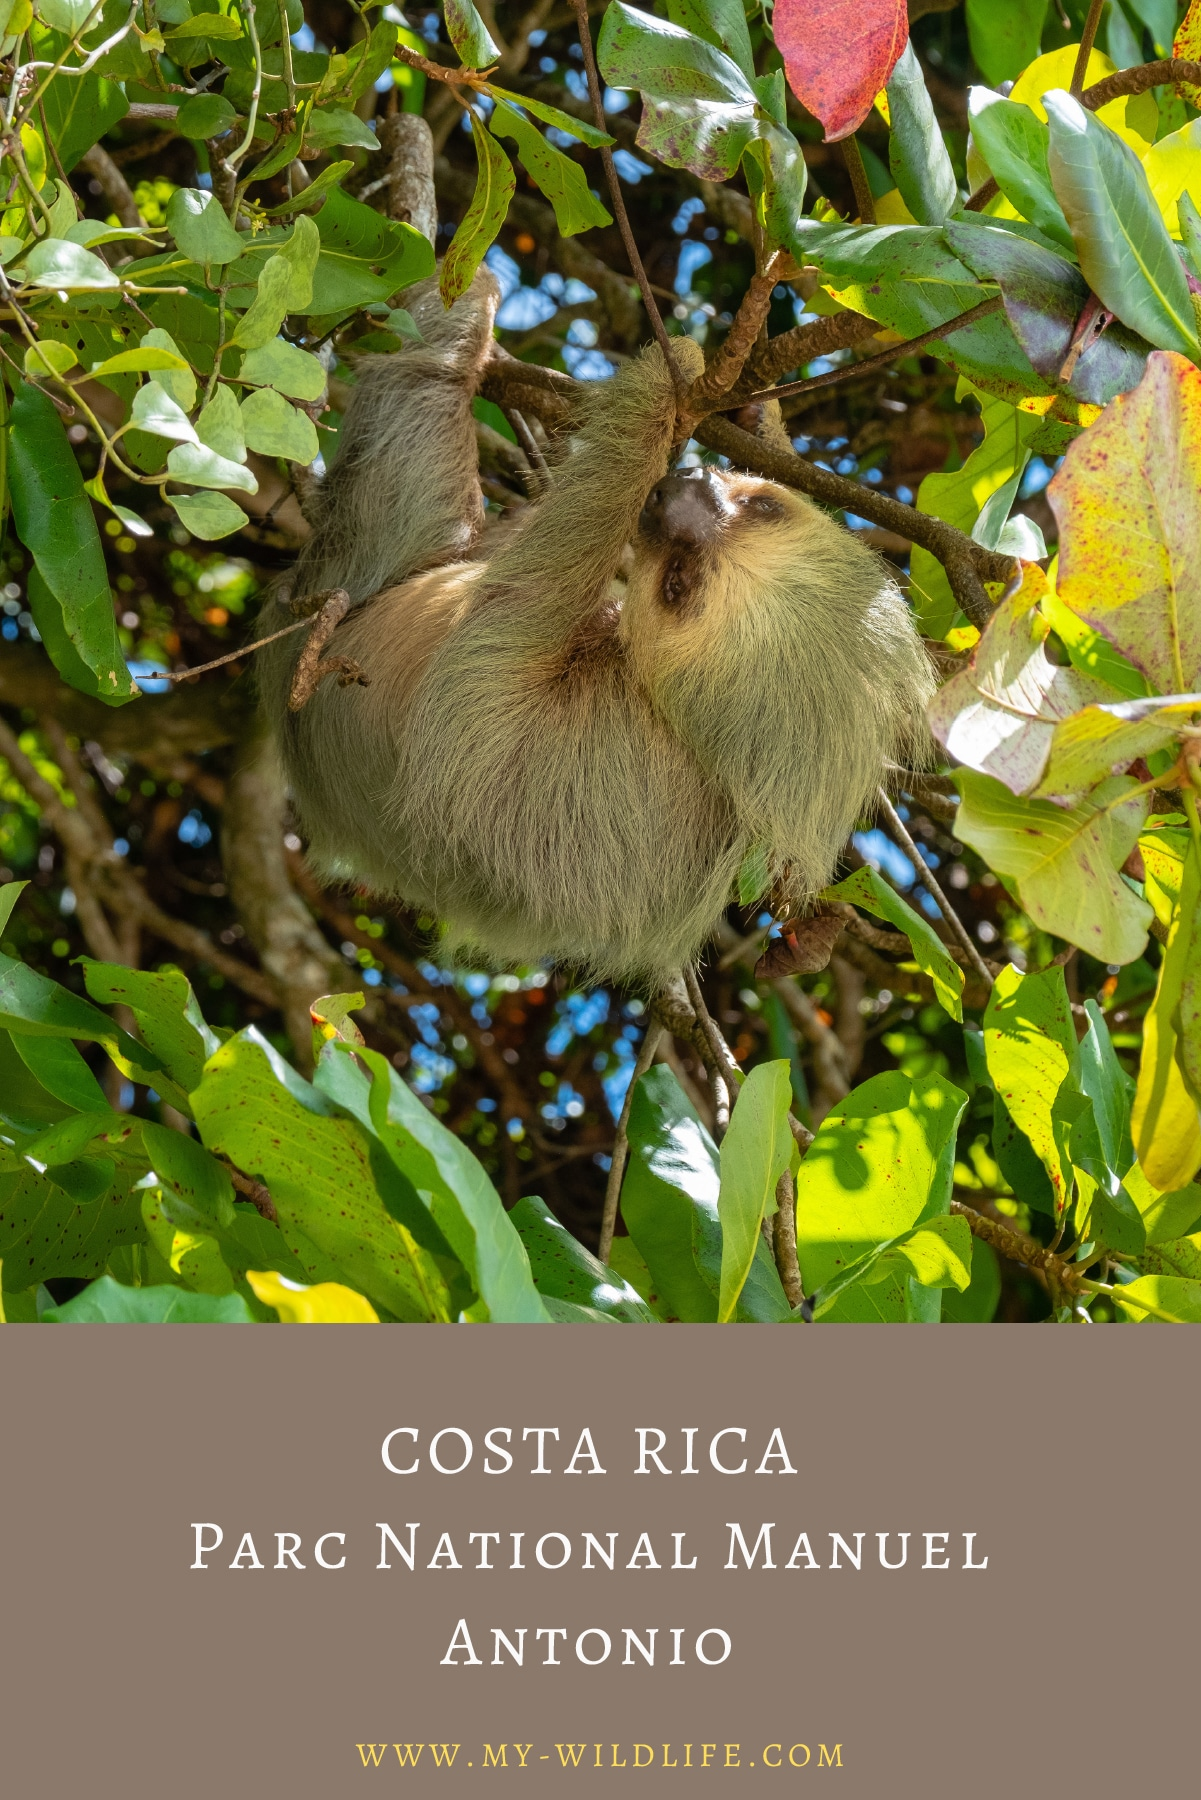 4OSTA-RICA-Parc-National-Manuel-Antonio-03